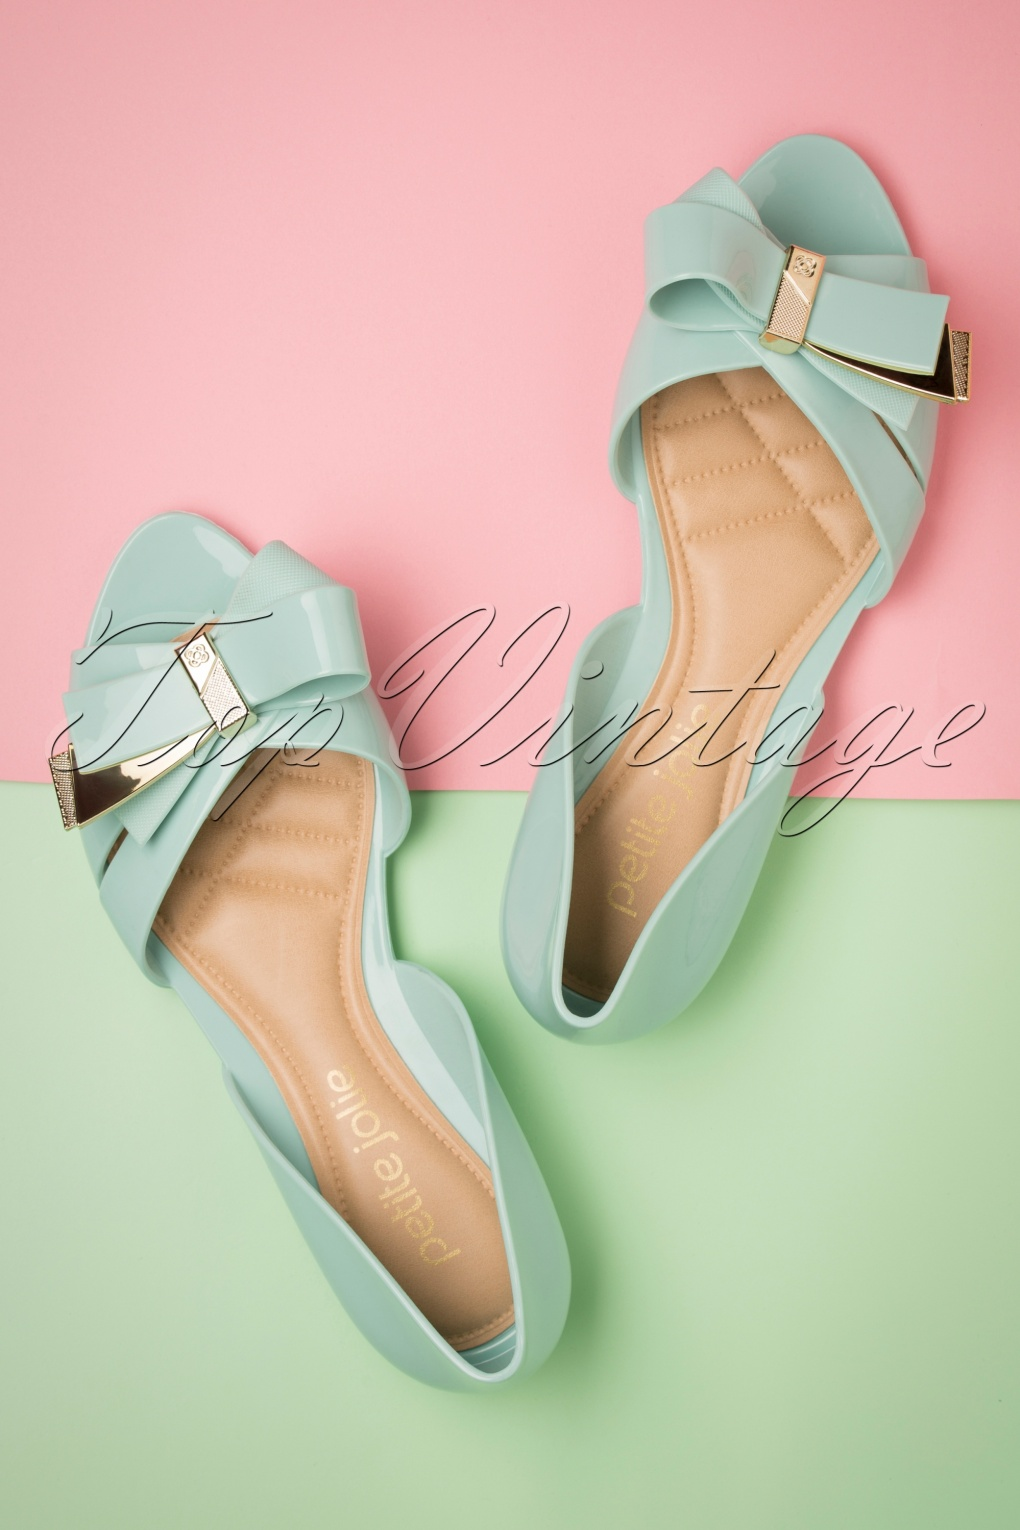 Retro Vintage Flats and Low Heel Shoes 60s Abby Bow Peeptoe Flats in Uber Pistache �35.00 AT vintagedancer.com